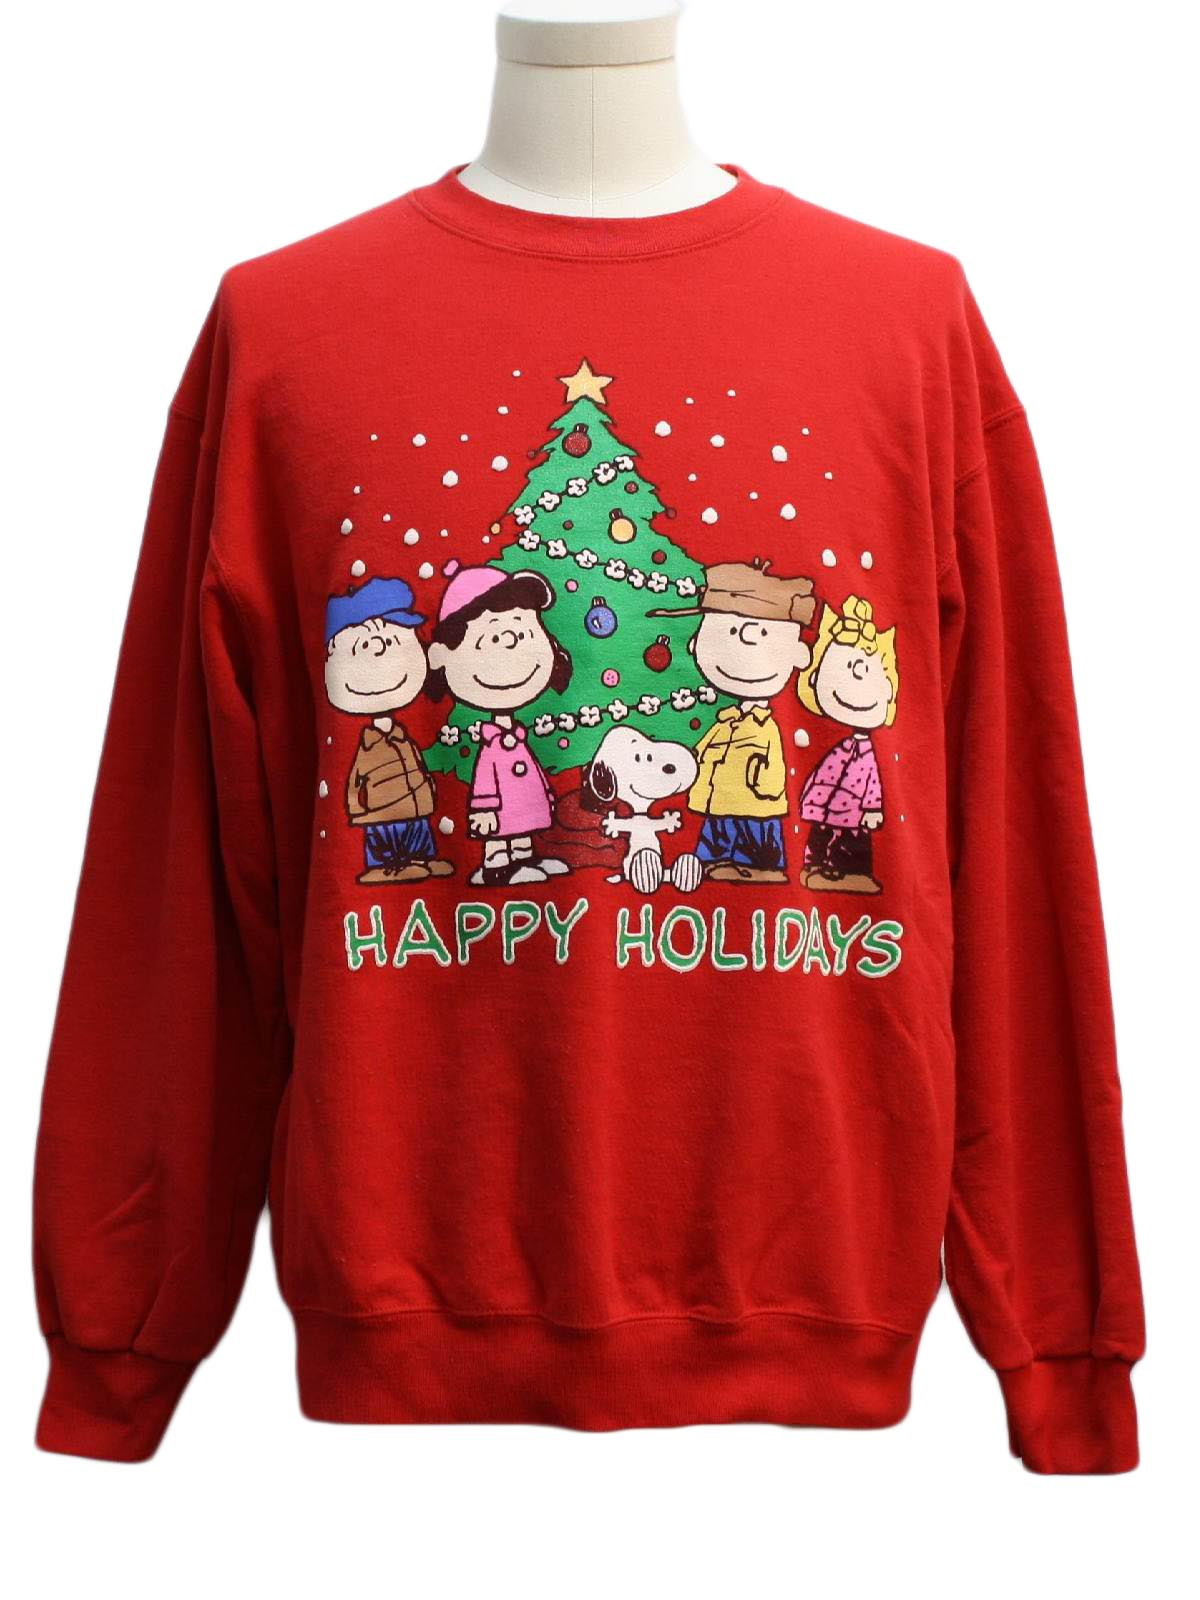 ugly christmas sweatshirt peanuts unisex red background cotton polyester blend longsleeve pullover ugly christmas sweatshirt with charlie brown lucy